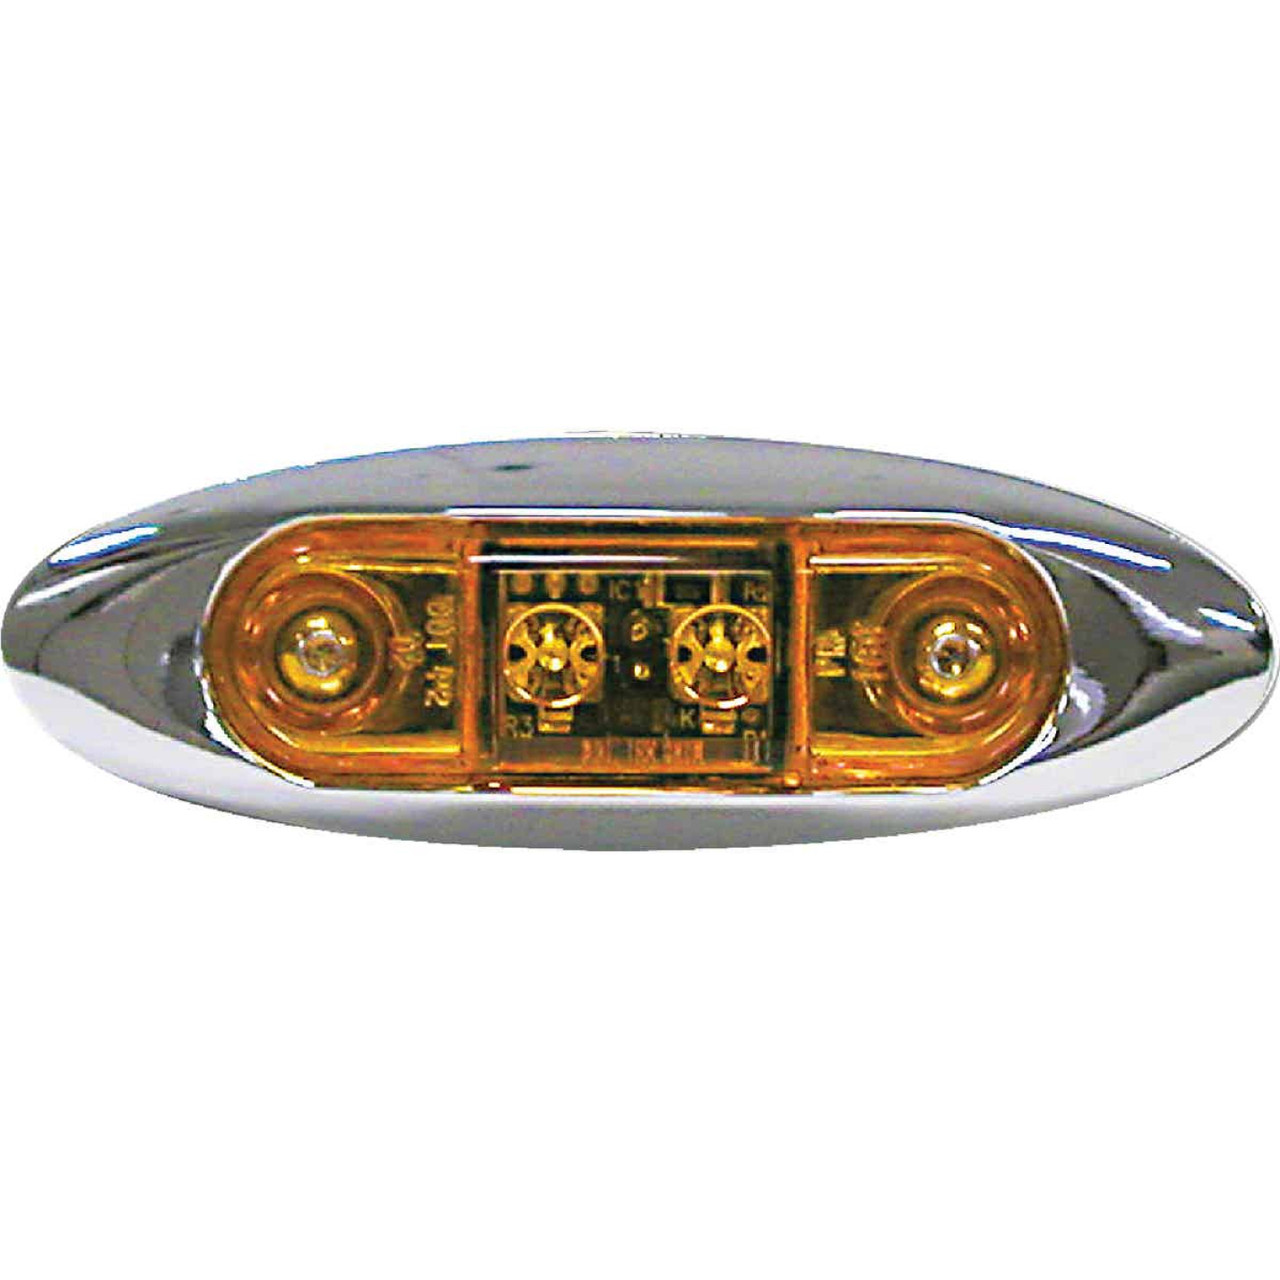 Peterson Rectangle 16 V. Amber Clearance Light